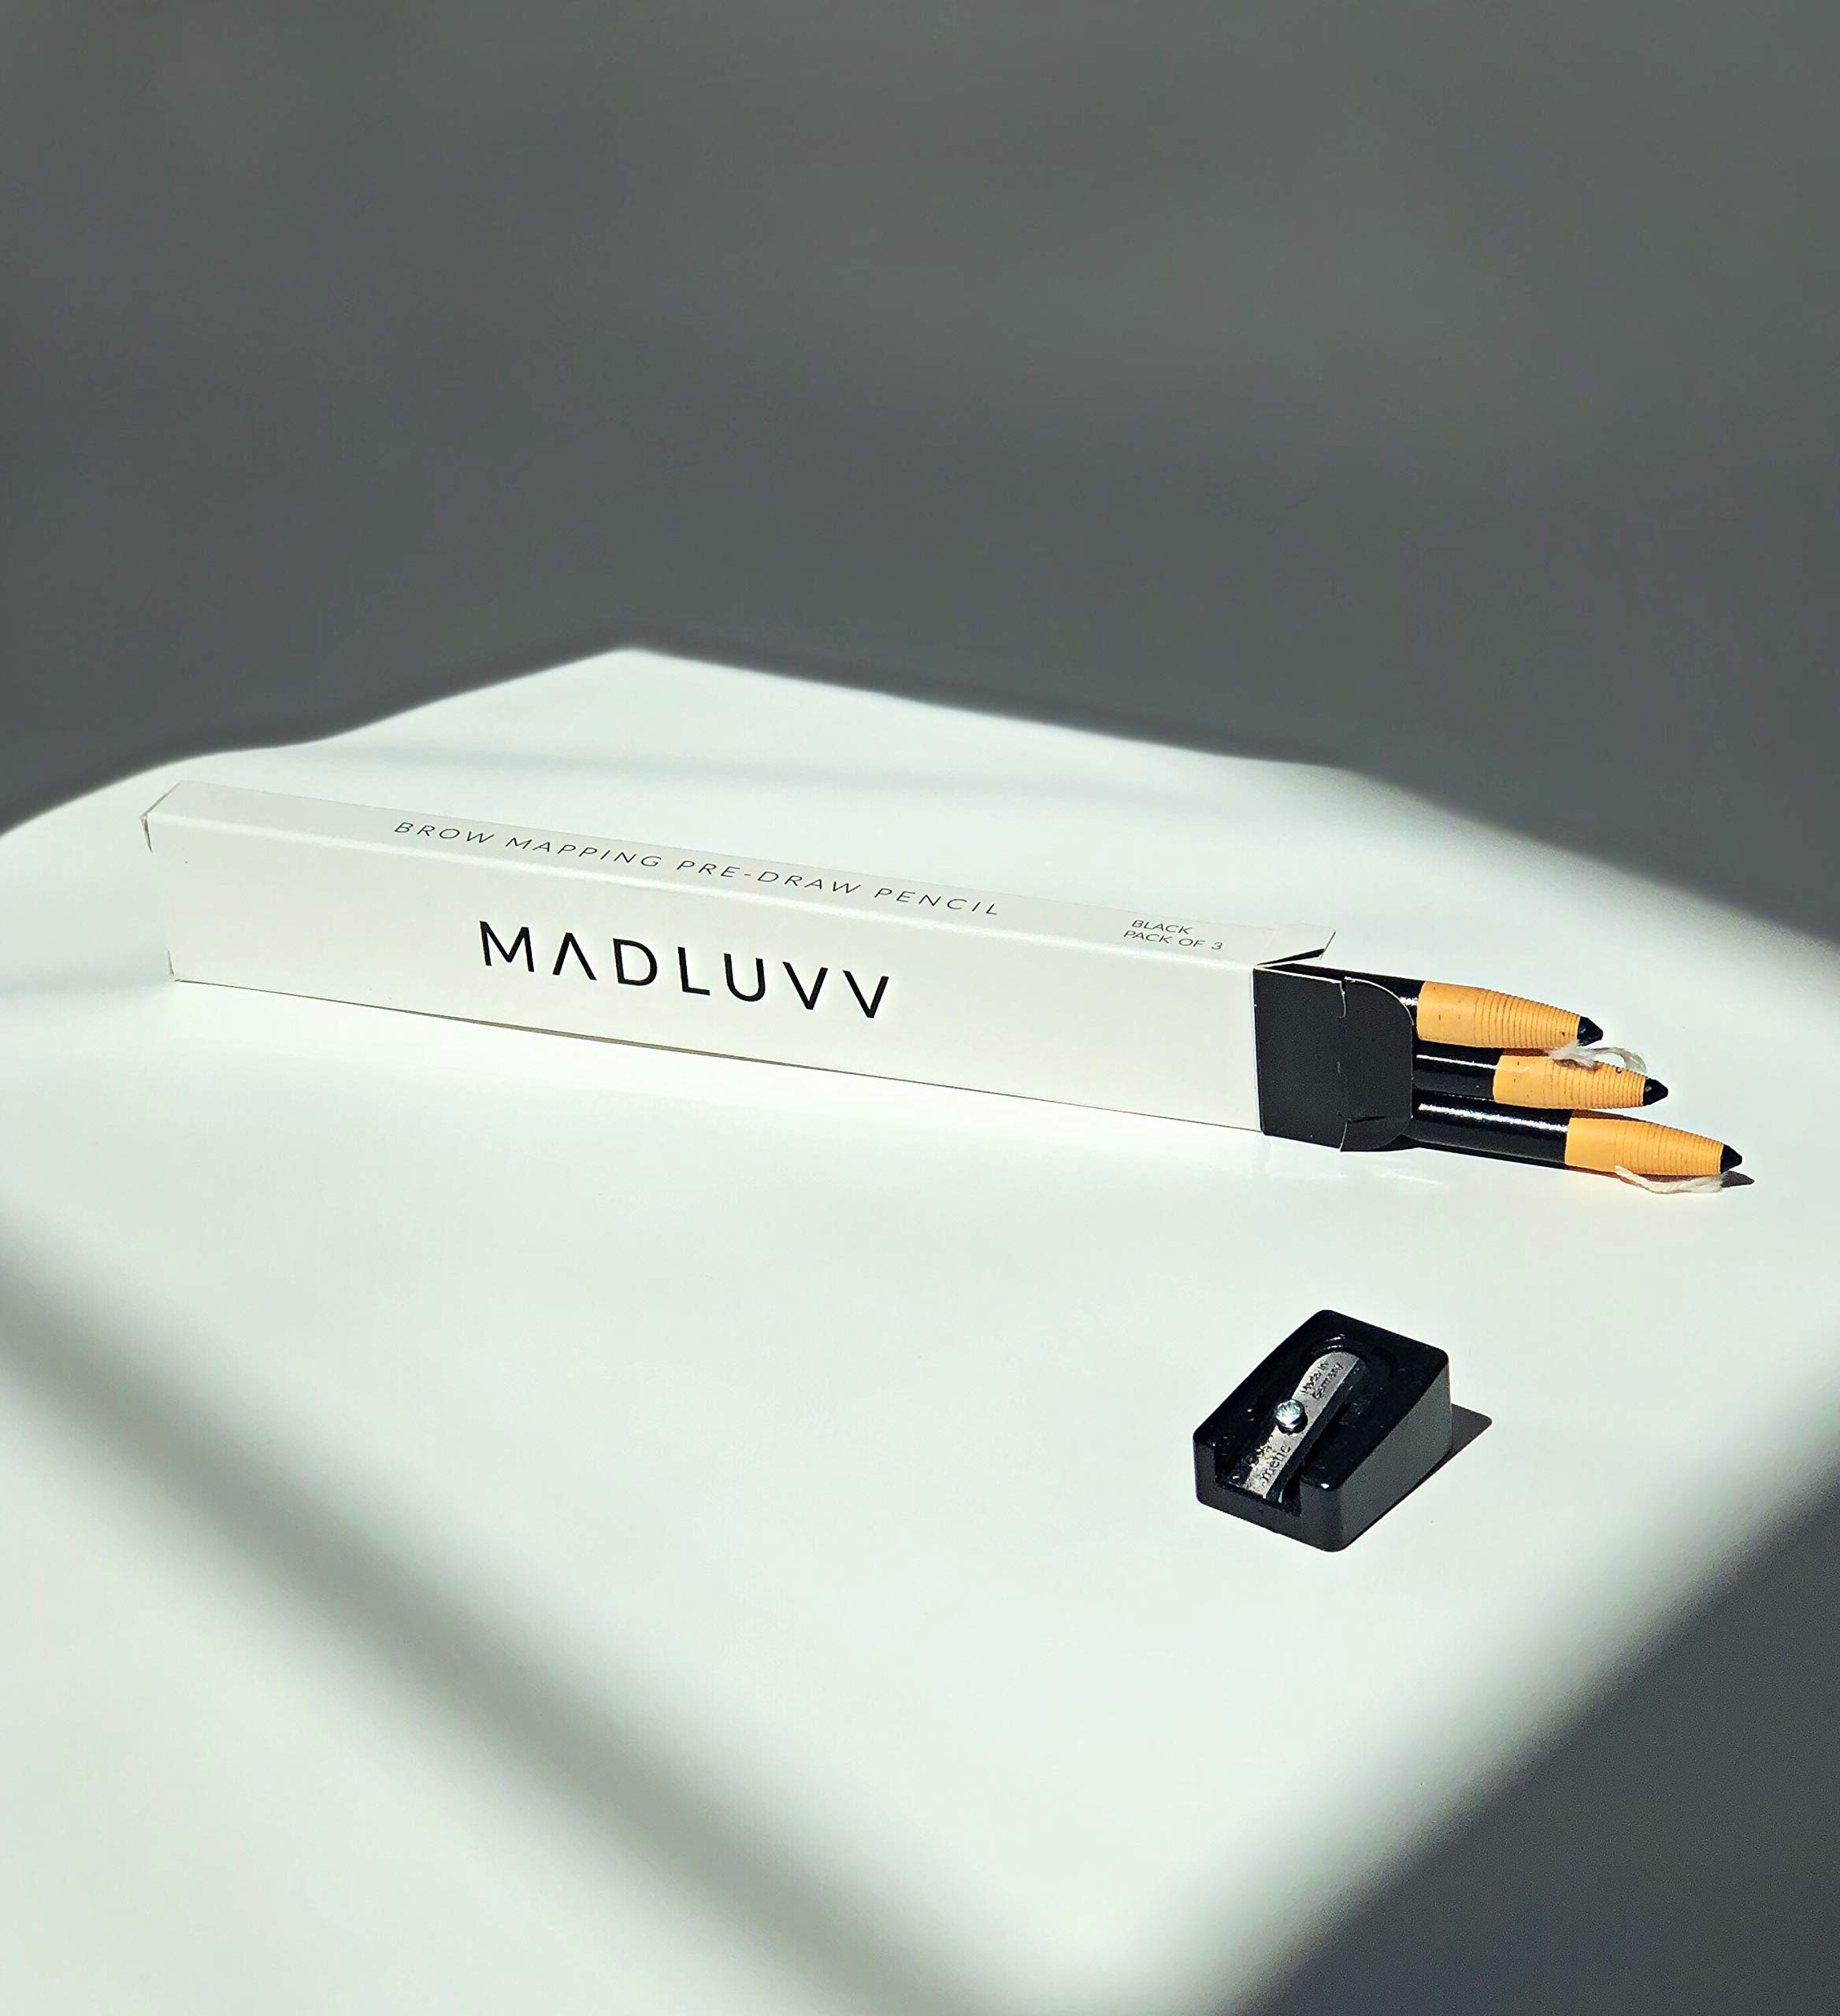 Best Microblading Pre Draw Pencils, Black with Sharpener (3 Pack) by MADLUVV (Image #2)